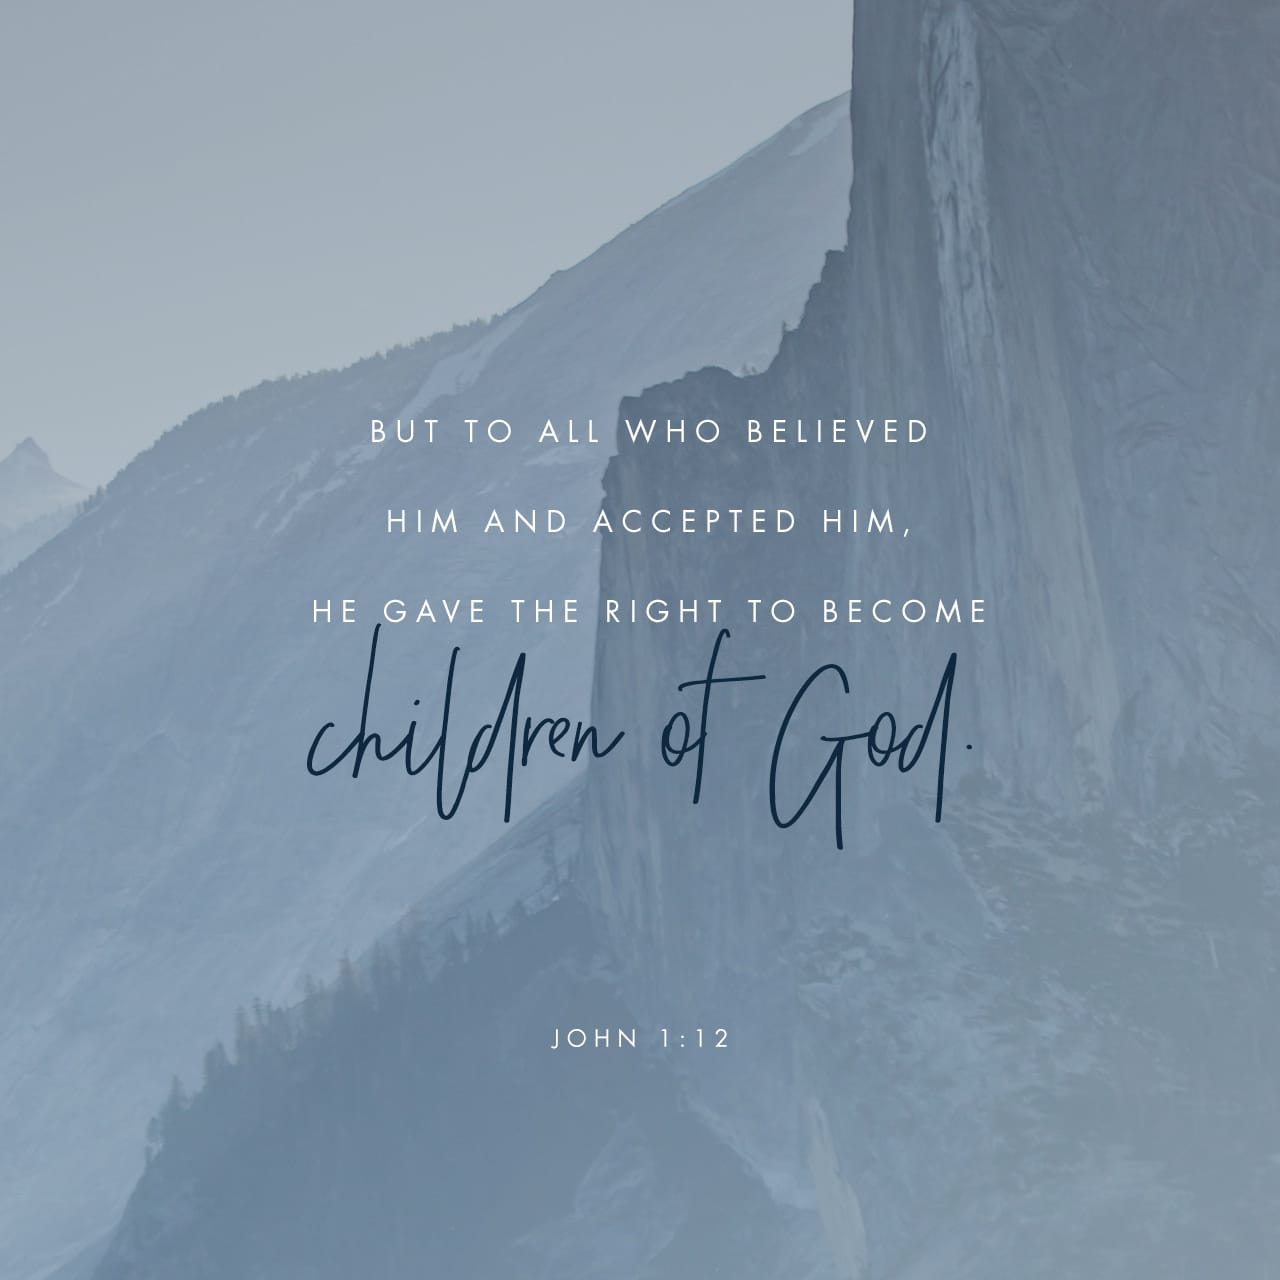 John 1:12 But as many as received him, to them gave he power to become the sons of God, even to them that believe on his name | King James Version (KJV)